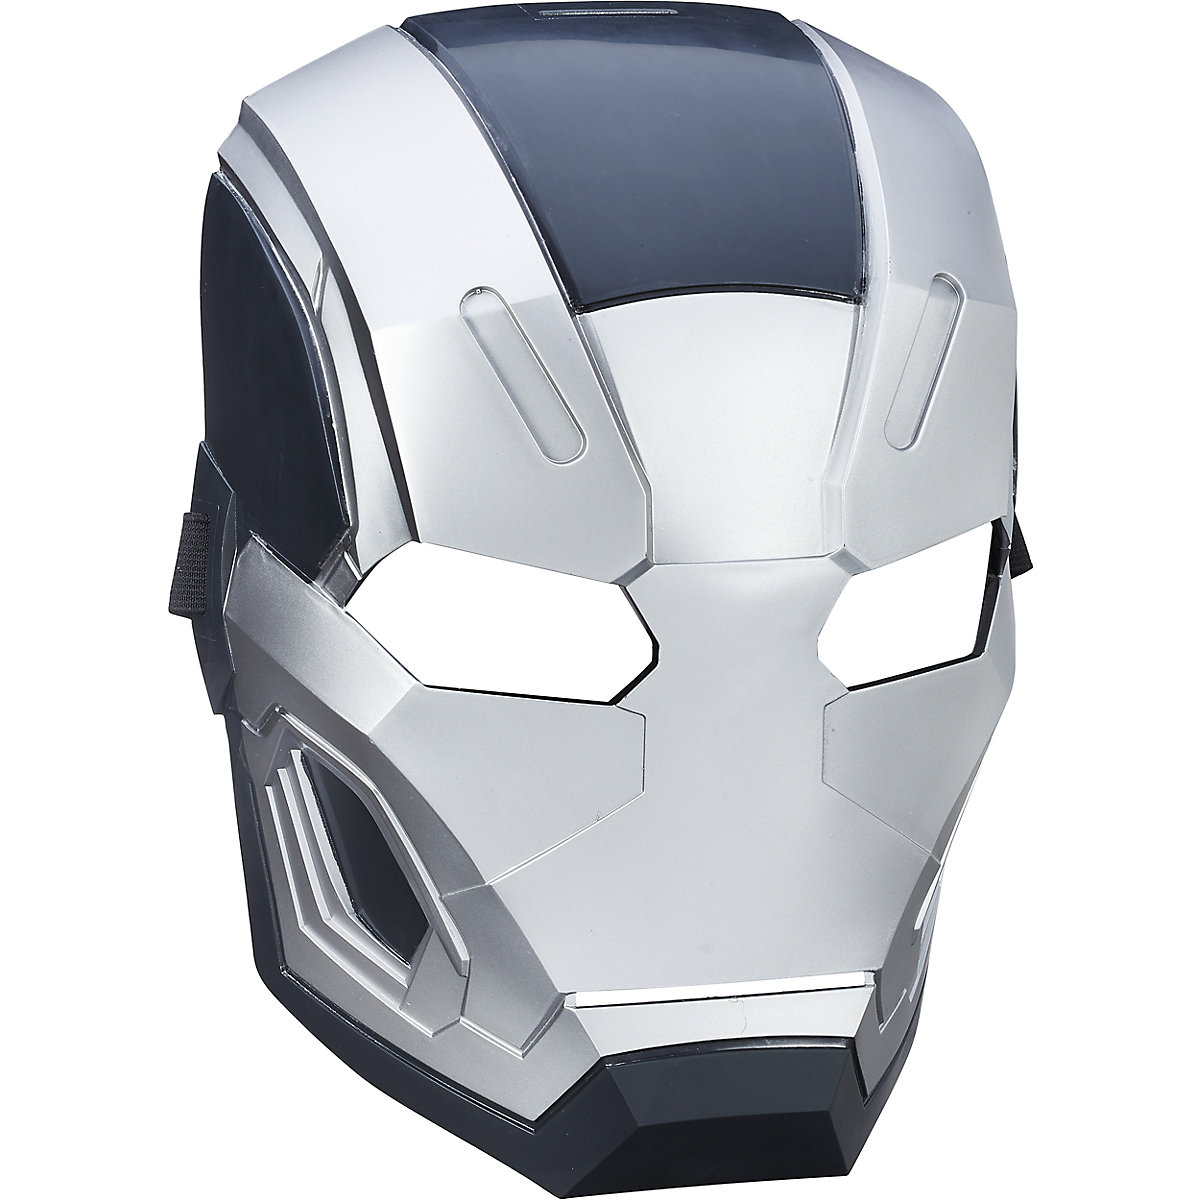 Hasbro  Mask 5064752 Playsets Interactive Masks  Aprilpromo Avengers Marvel War Machine MTpromo